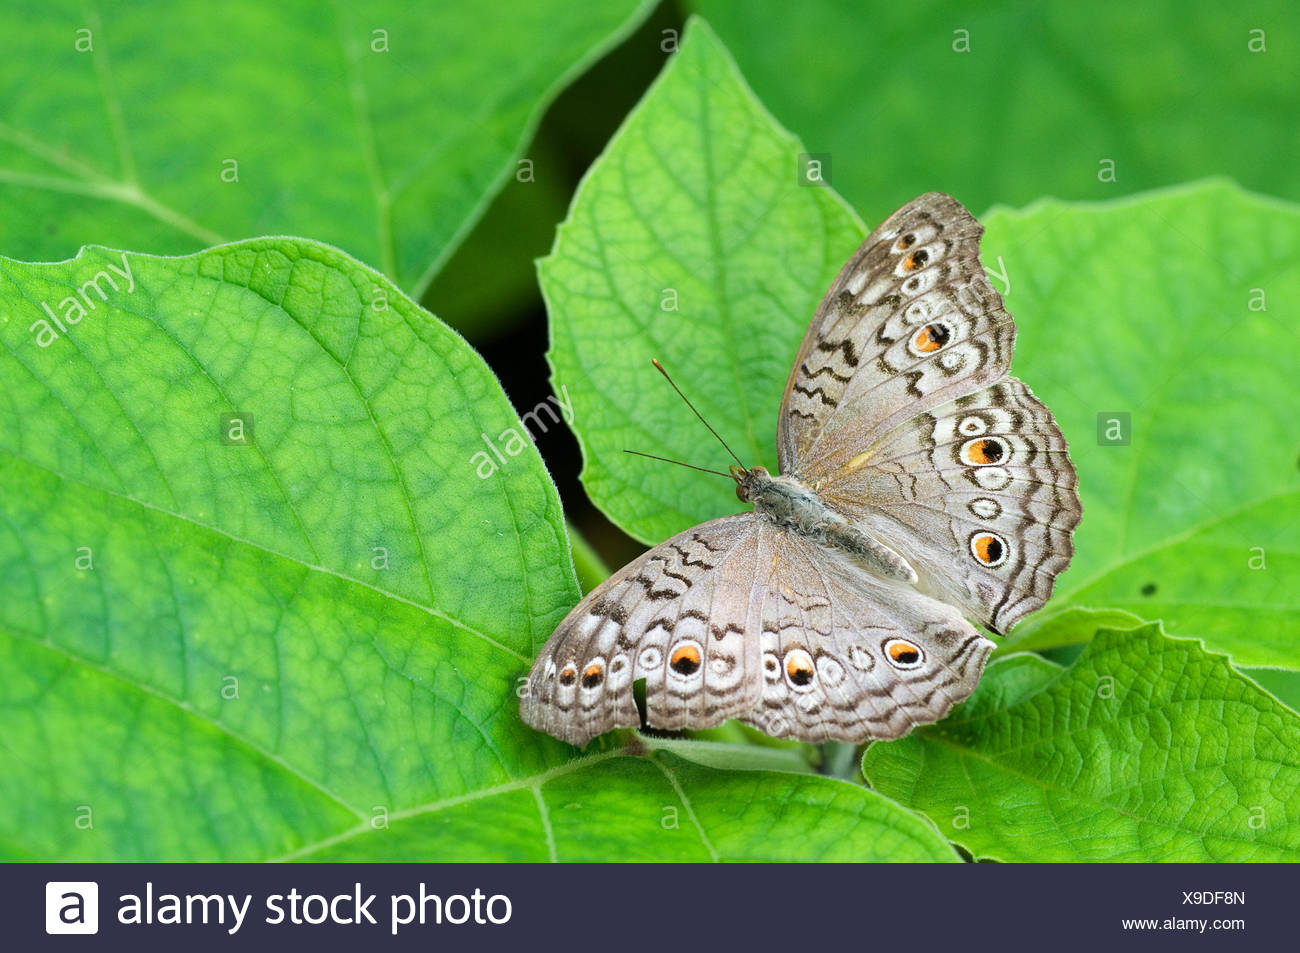 Grey pansy butterfly (Junonia atlites) at rest with wings open. - Stock Image